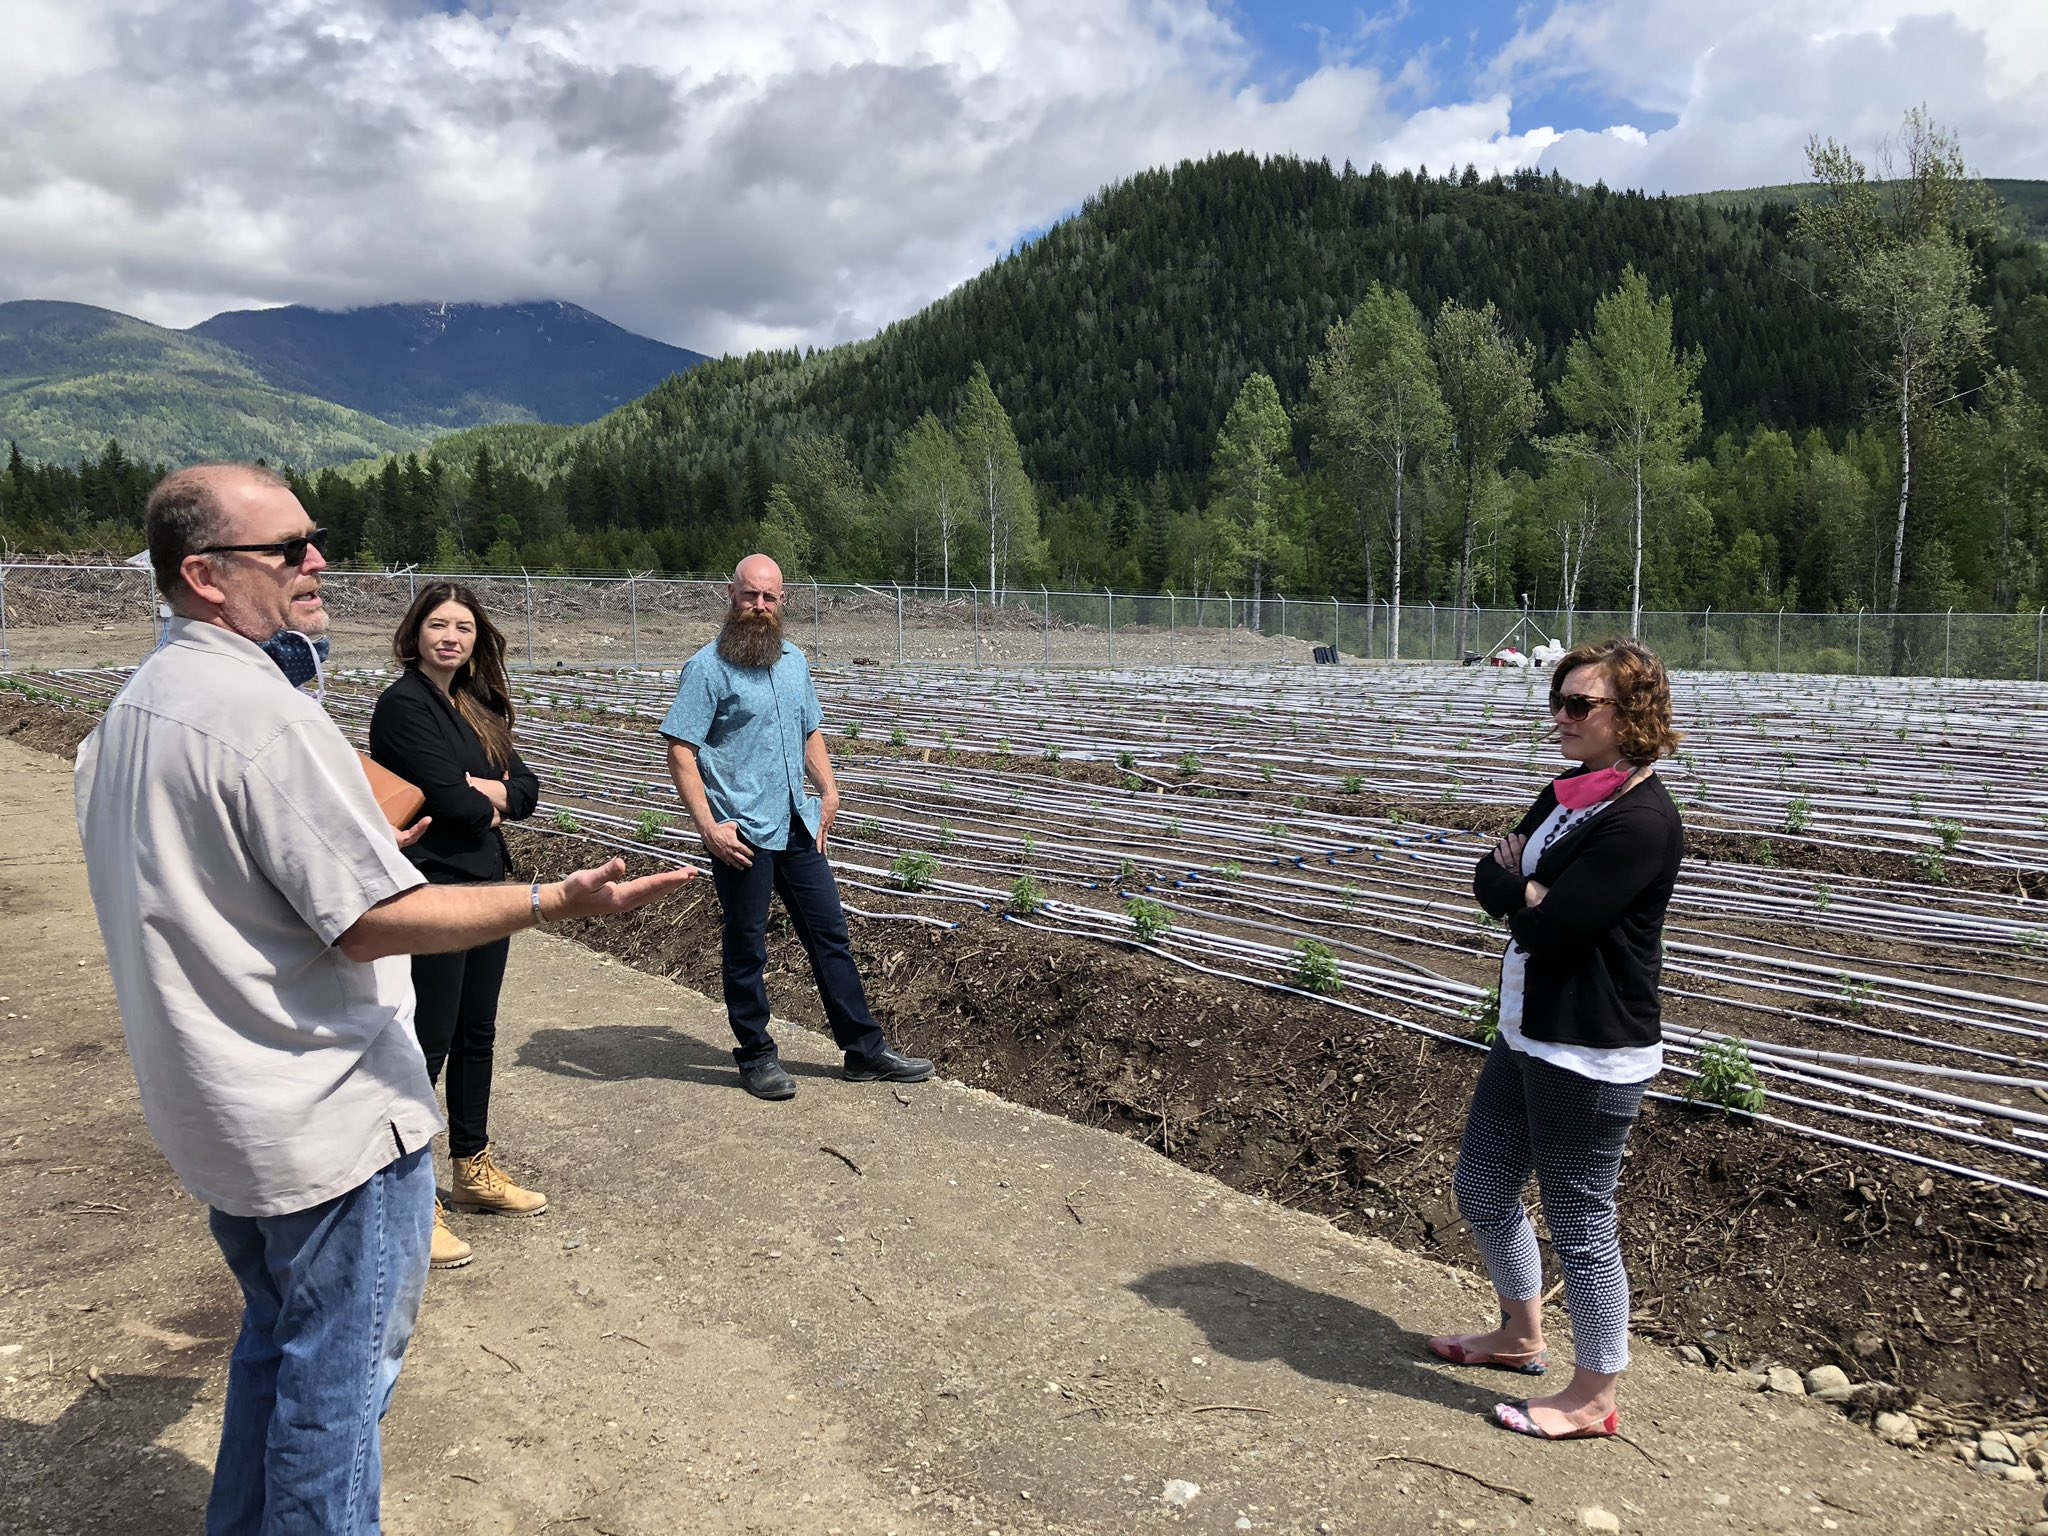 Kootenay cannabis growers benefit from local licensing program